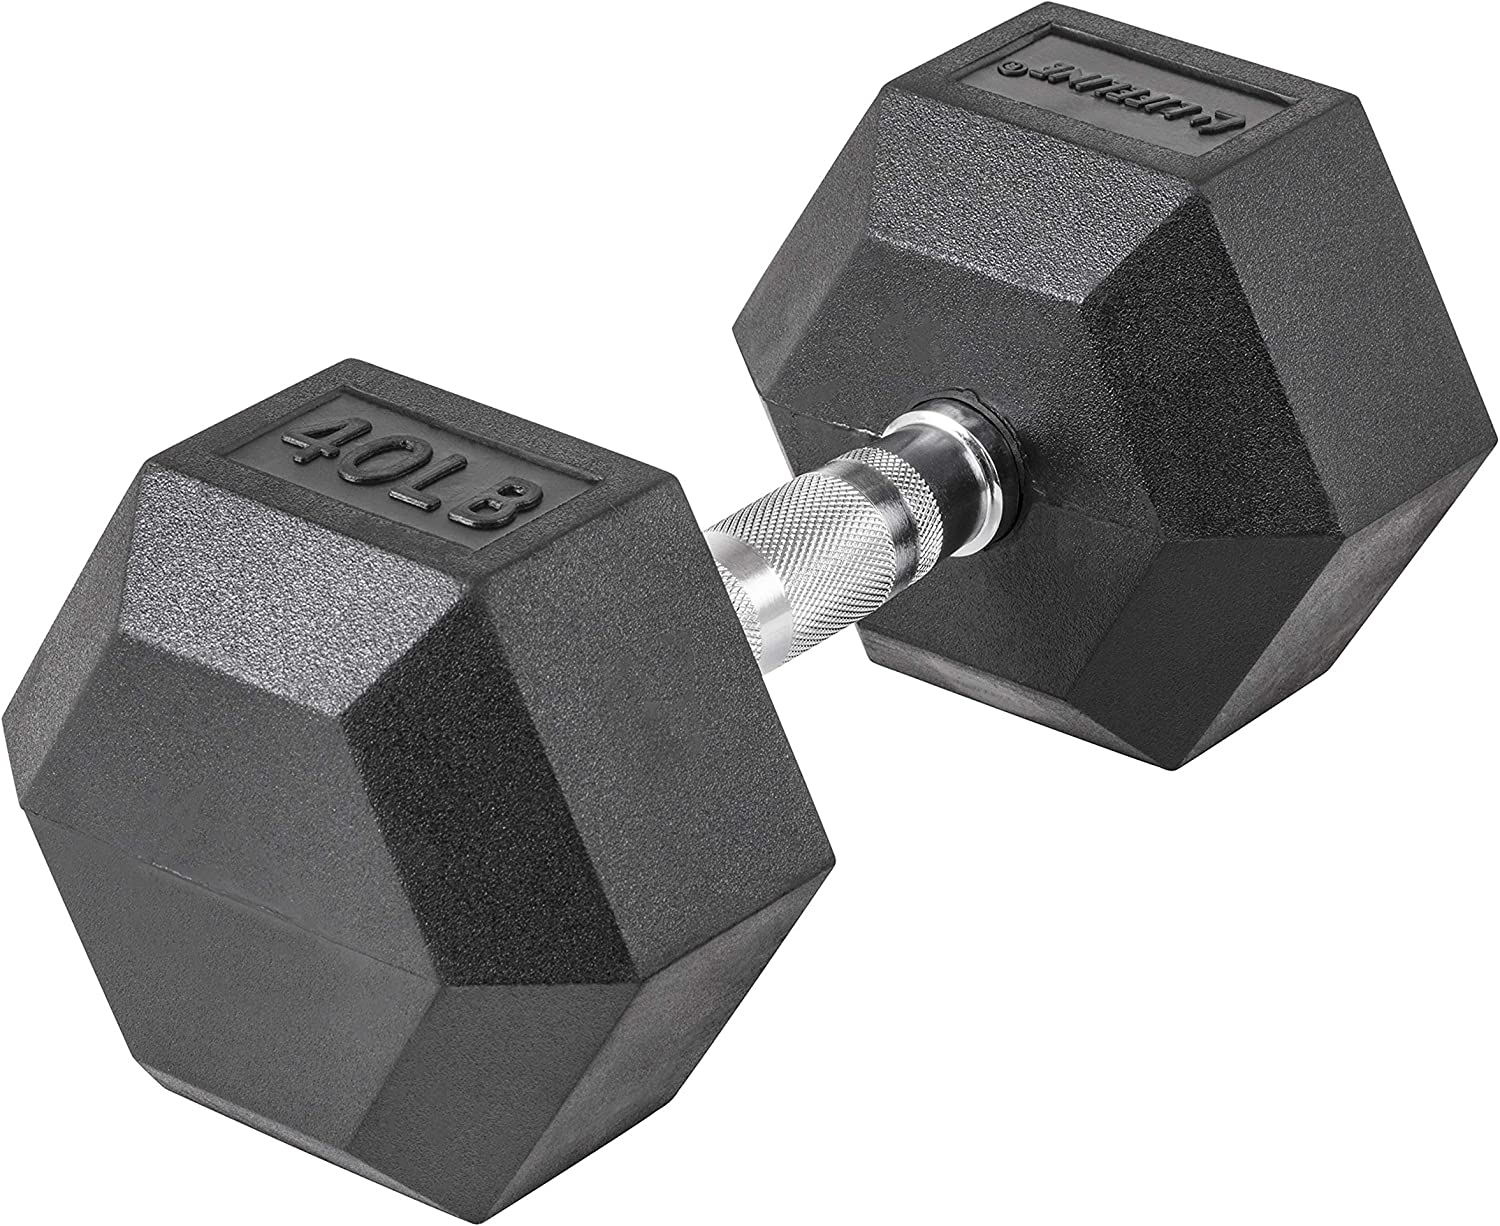 Lifeline Hex Dumbbells Premium Quality, Low Odor, and Ergonomic Knurled Handle